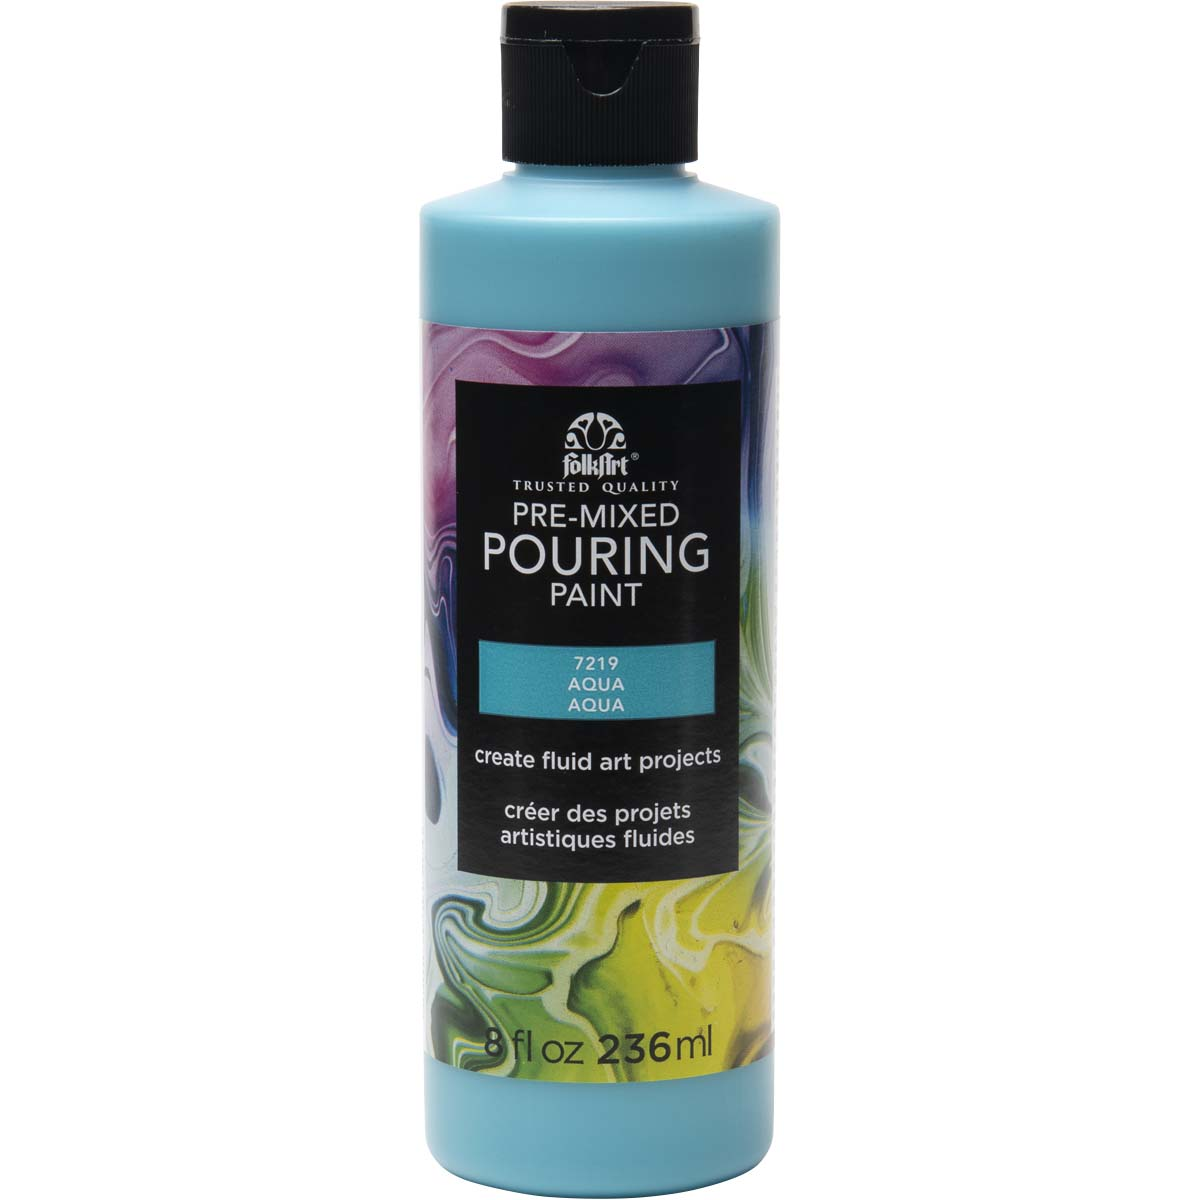 FolkArt ® Pre-mixed Pouring Paint - Aqua, 8 oz. - 7219